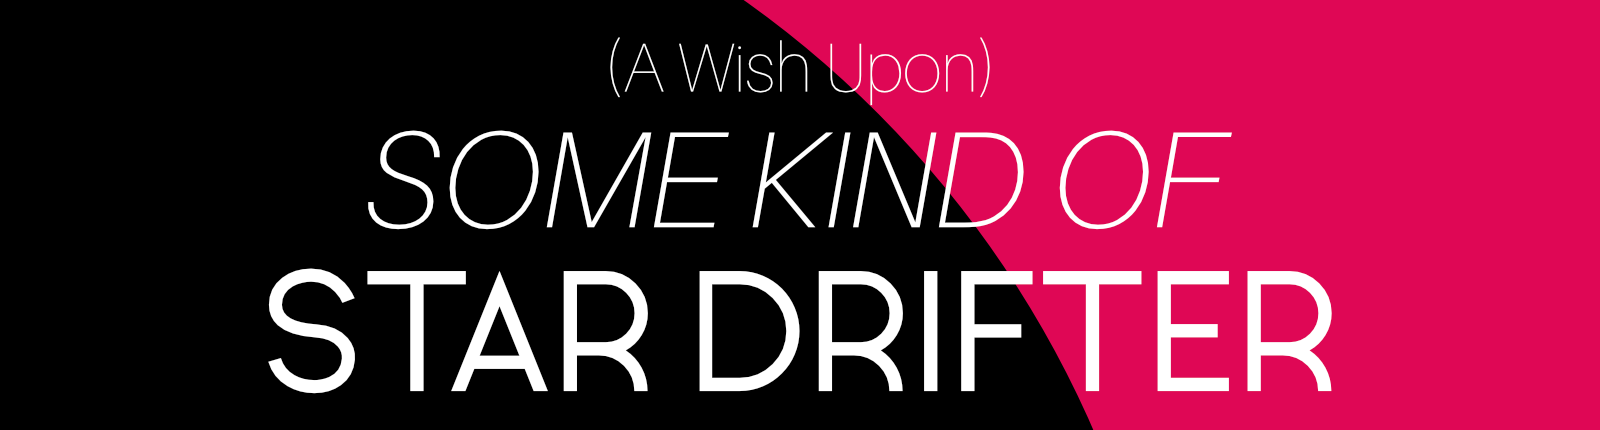 (A Wish Upon) Some Kind of Star Drifter